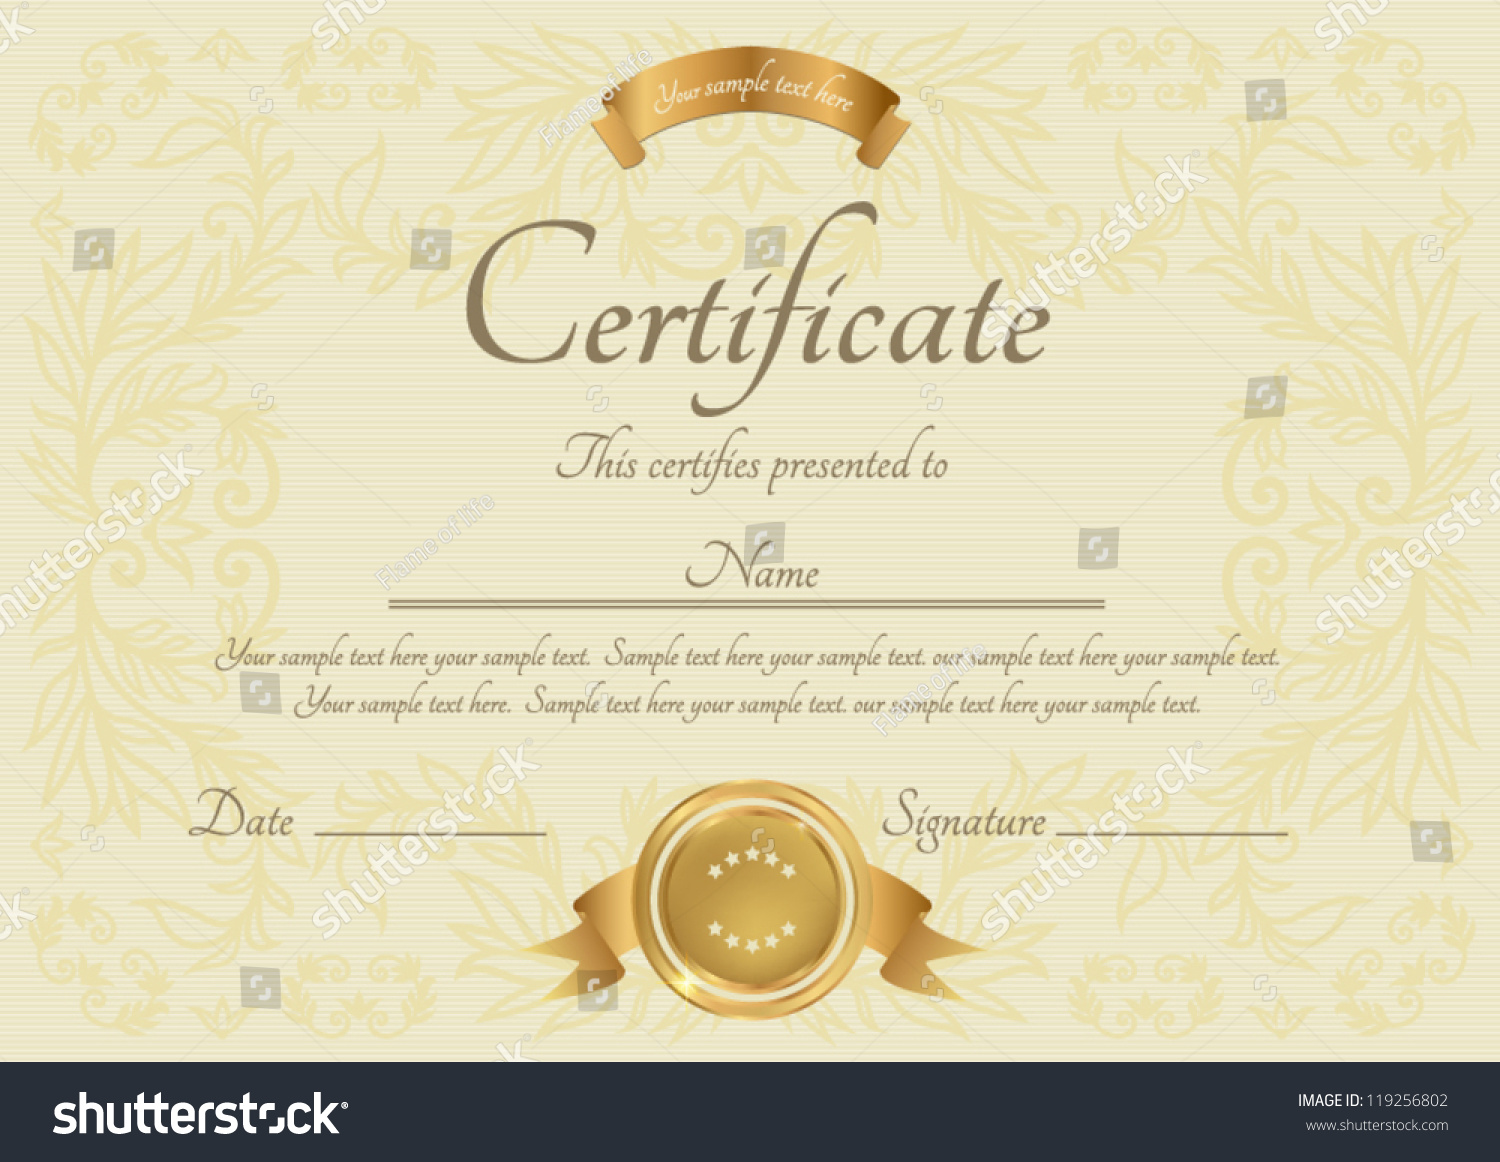 Free certificate of completion template benefits analysis template free templates for certificates of completion royalty free avopix 119256802 free templates for certificates of completion xflitez Choice Image